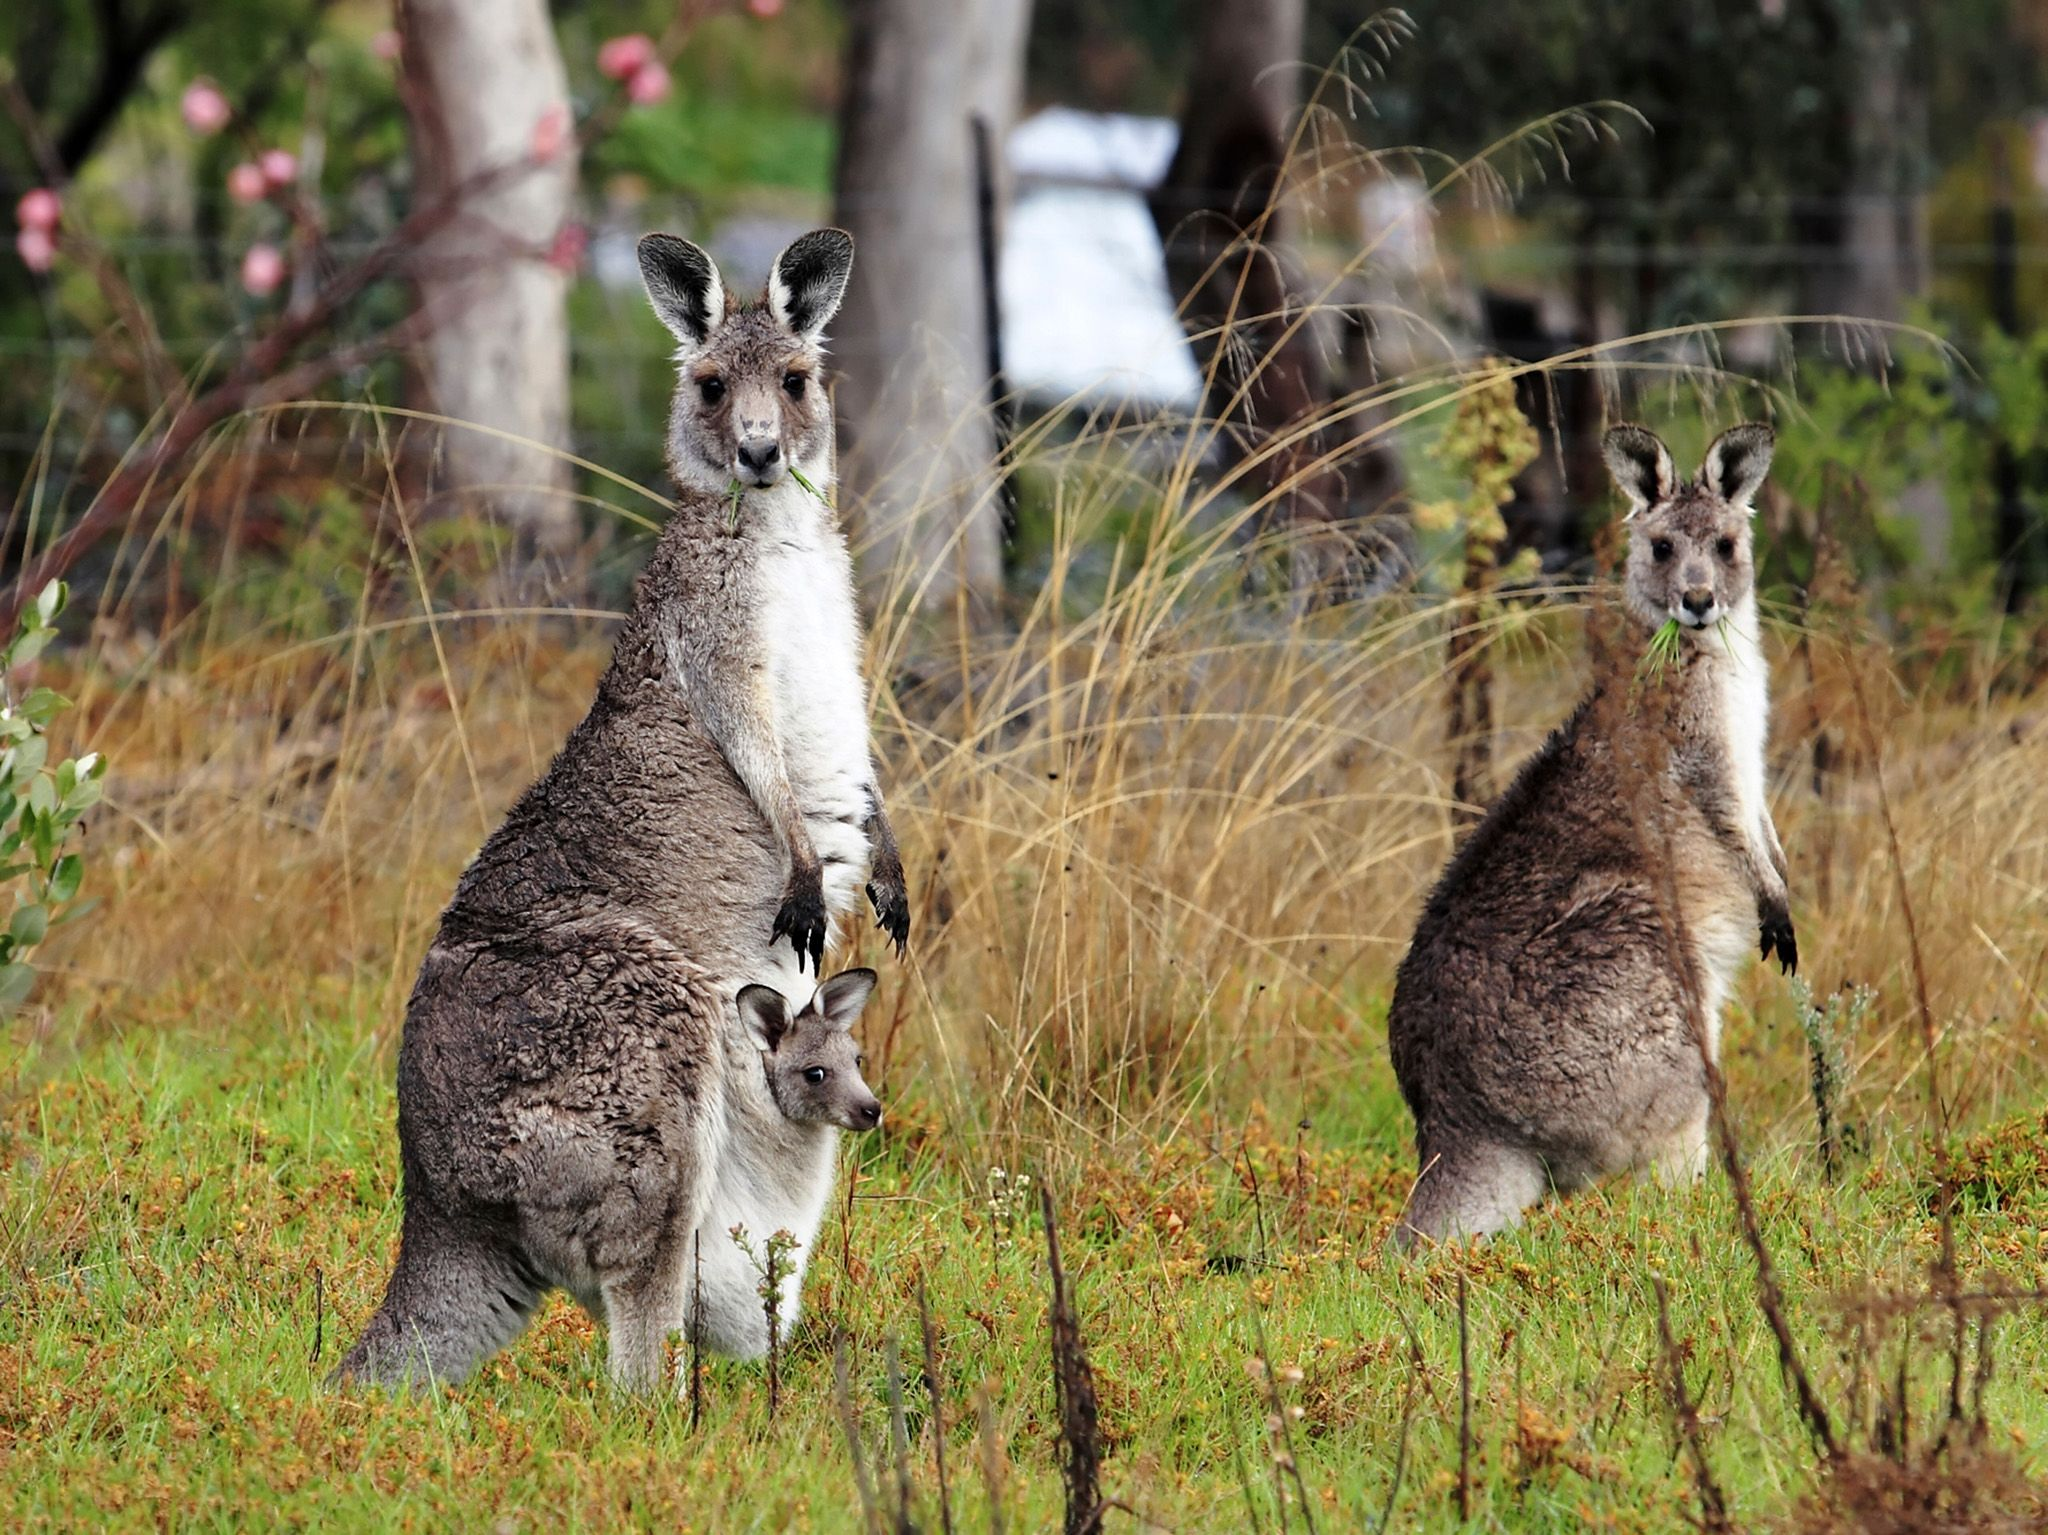 A gray kangaroo and her joey with another kangaroo in a fruit garden (peach blossoms visible)... [Foto del giorno - ottobre 2017]